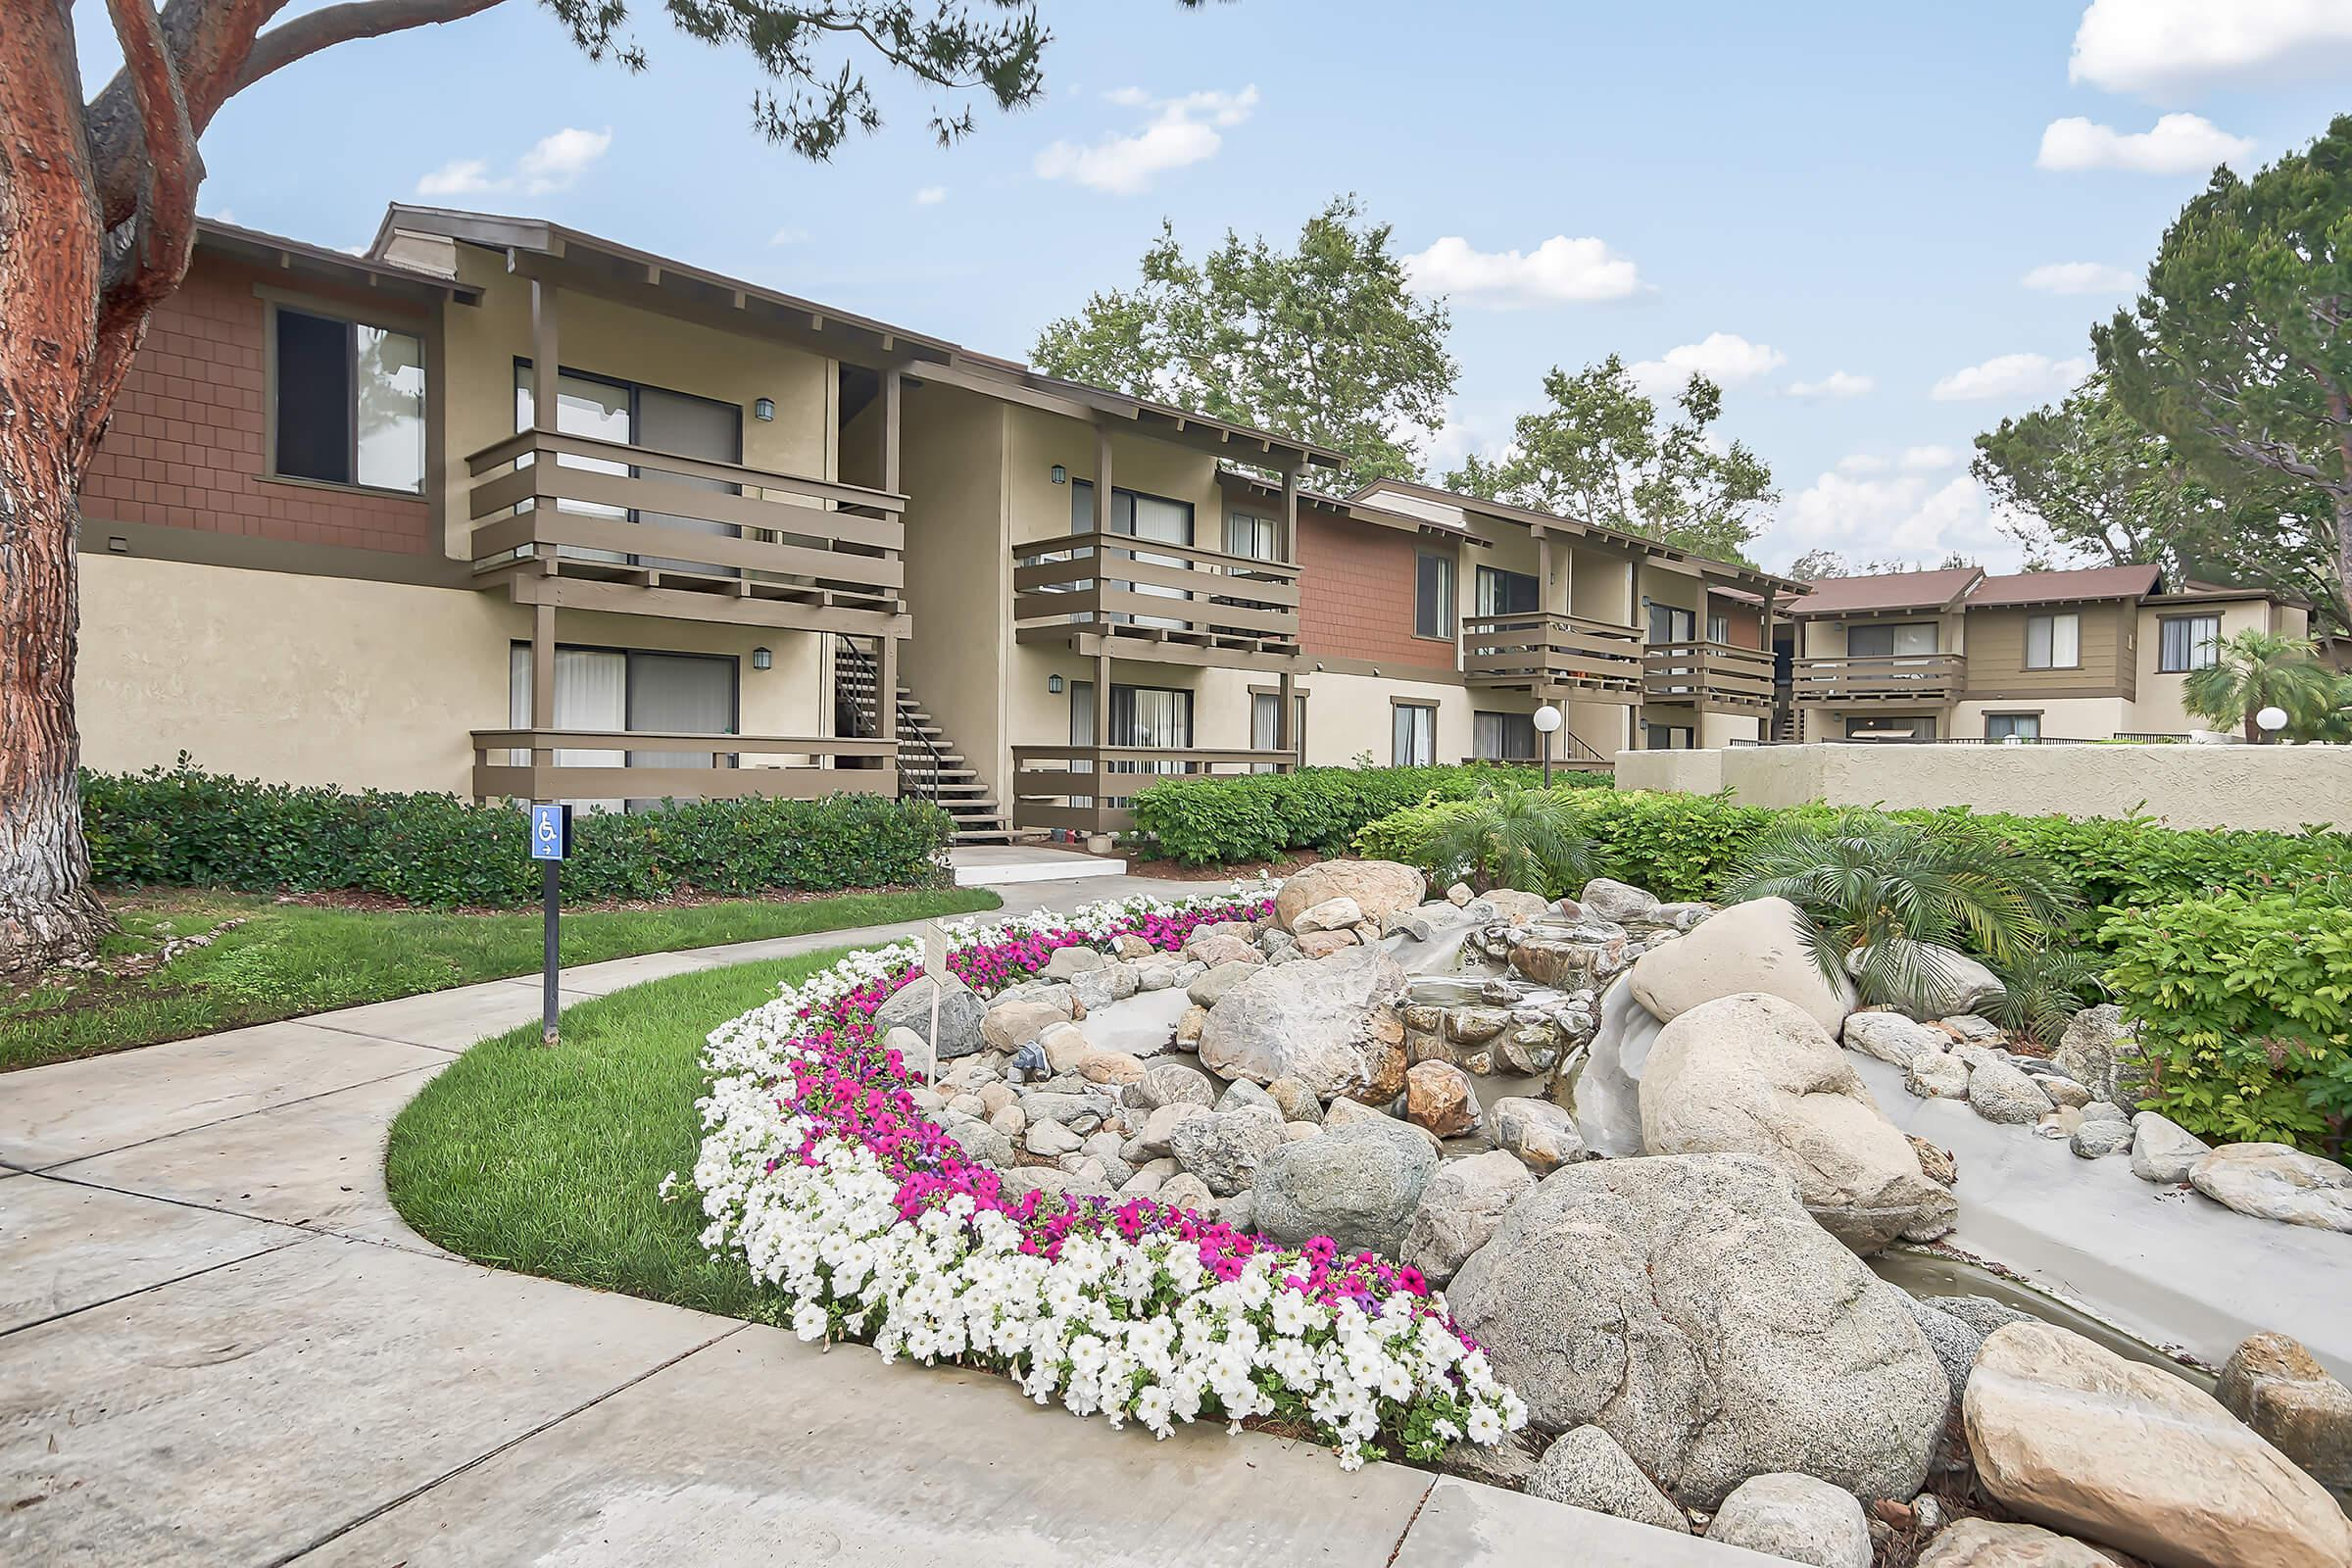 Raintree Apartment Homes community building with white and pink flowers